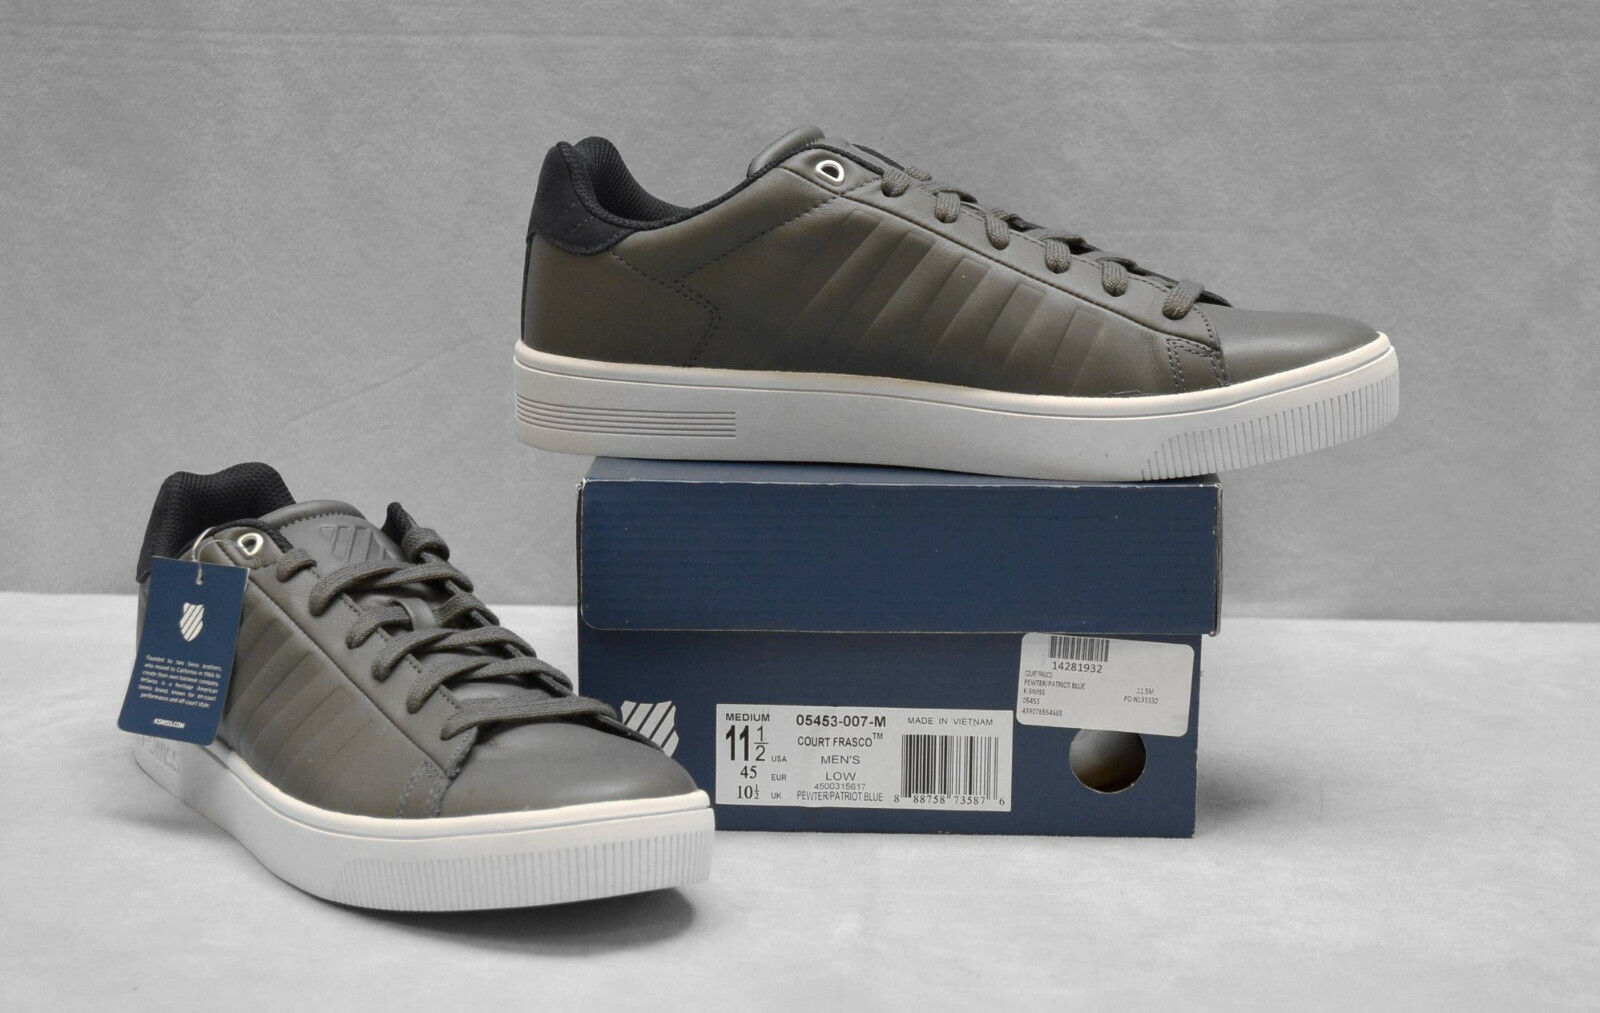 B2 NEW K-SWISS Court Frasco Pewter/Patriot Blue Low Top  Shoes Sz US 11.5